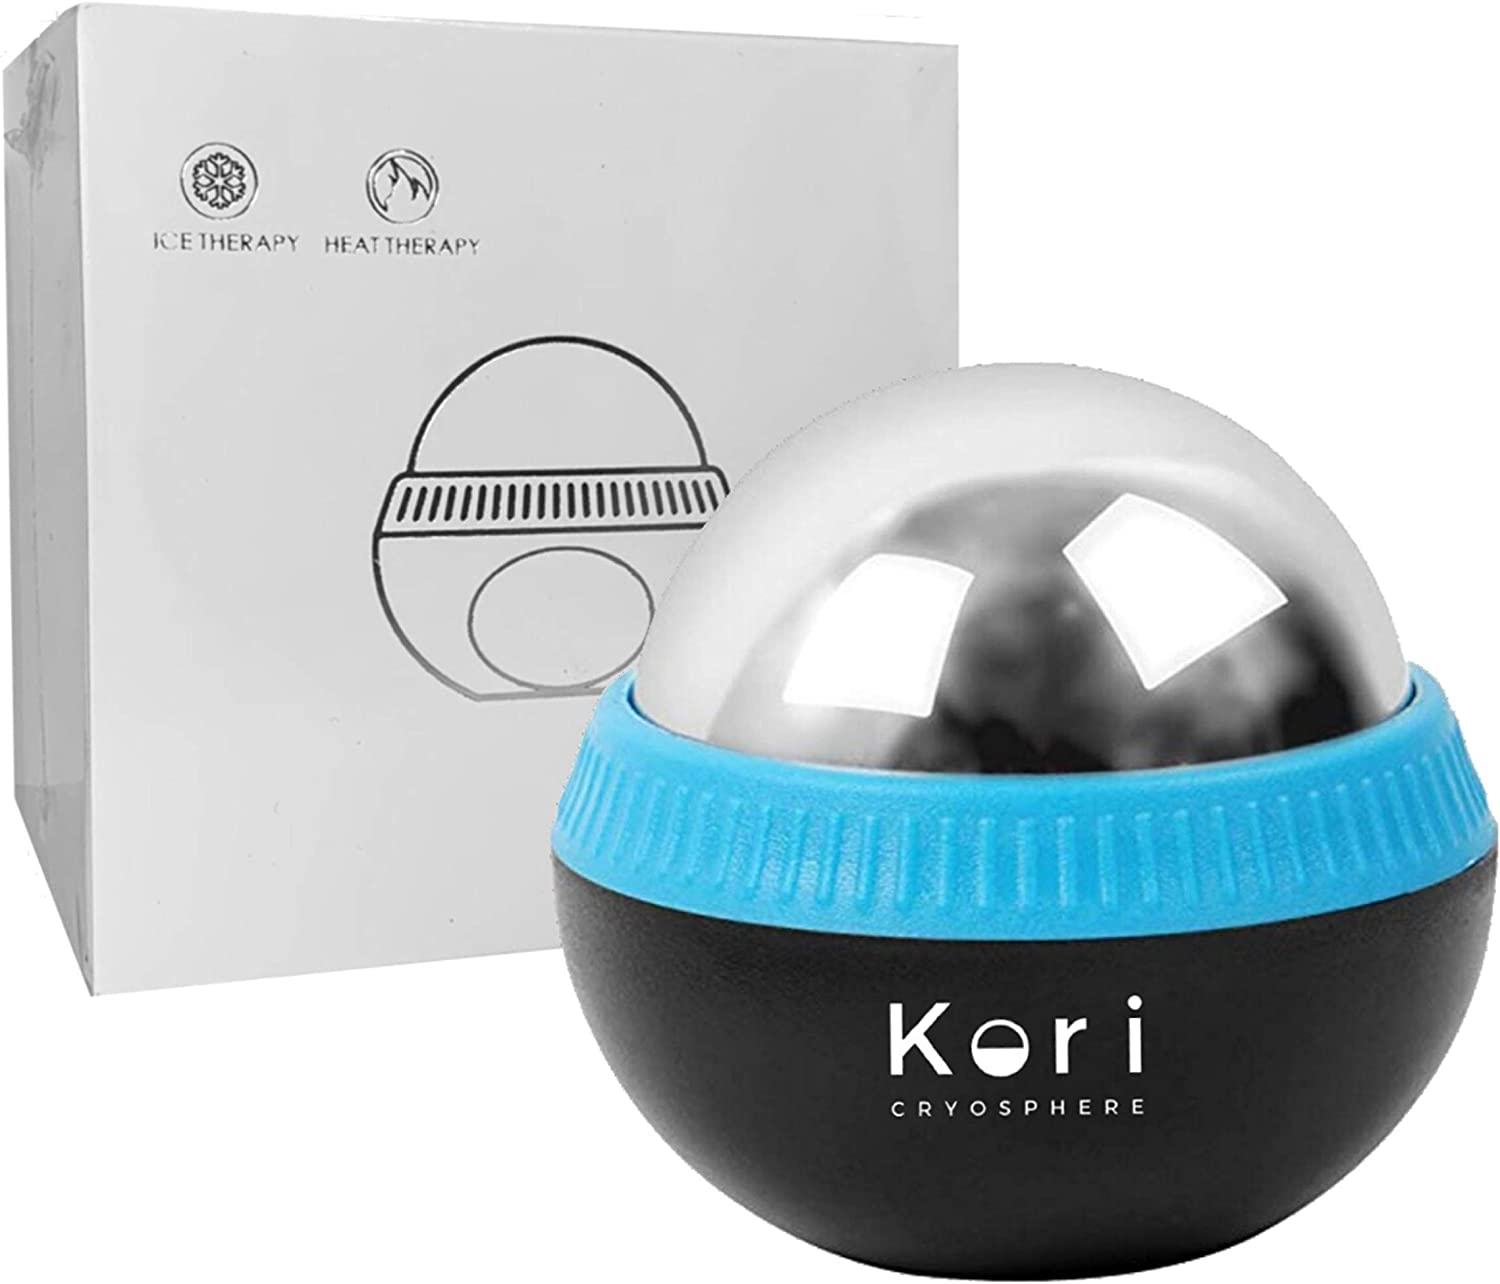 Kori Cryosphere Cold Massage Roller Ball - 6 Hours Cold/Hot Relief - Removable Ball - Rapid Recovery - Inflammation Reduction - Ice Roller - Myofascial Release - Perfect Massage Gifts